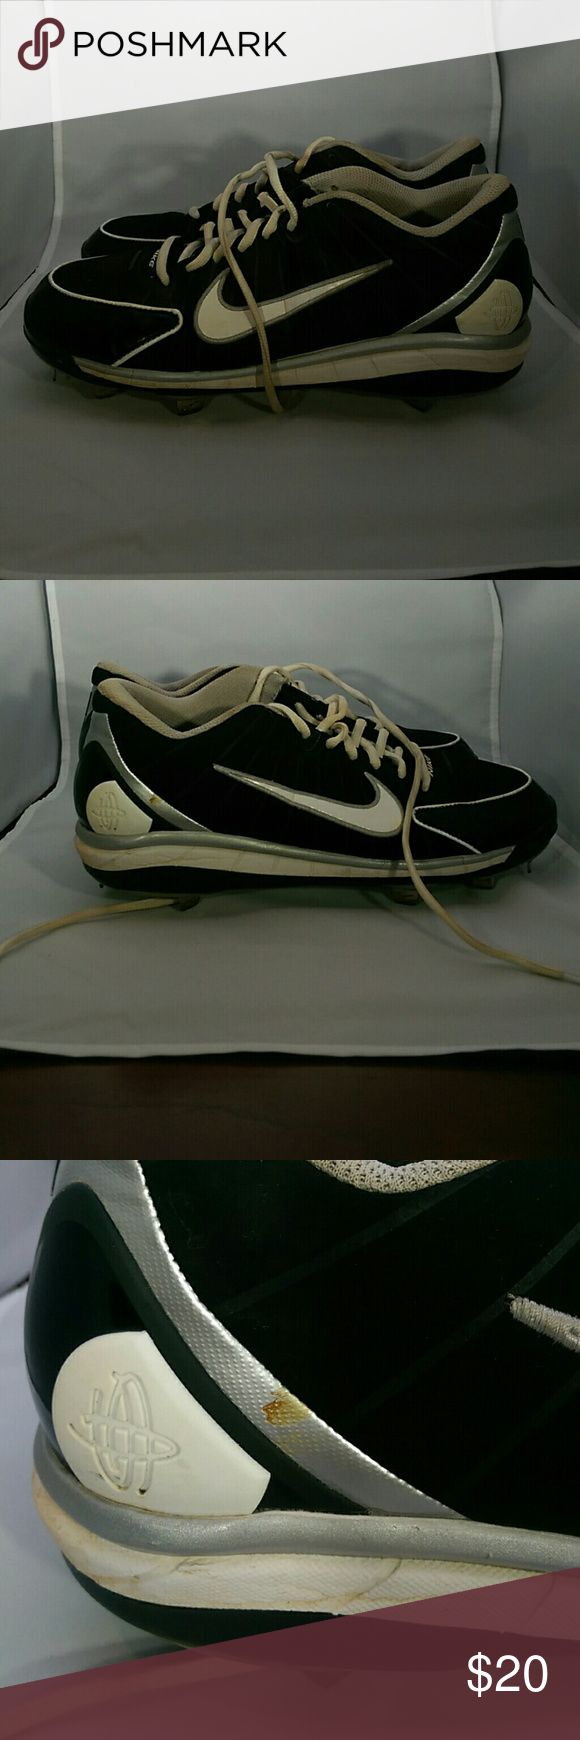 Nike Huarache Metal Cleats Black Size 10.5 Light weight cleats. 469729-011. These are dirty but I do not know how to clean them - I cannot put them in the washer as the studs are metal. One mark on side. We pictures for details. Nike Shoes Sneakers